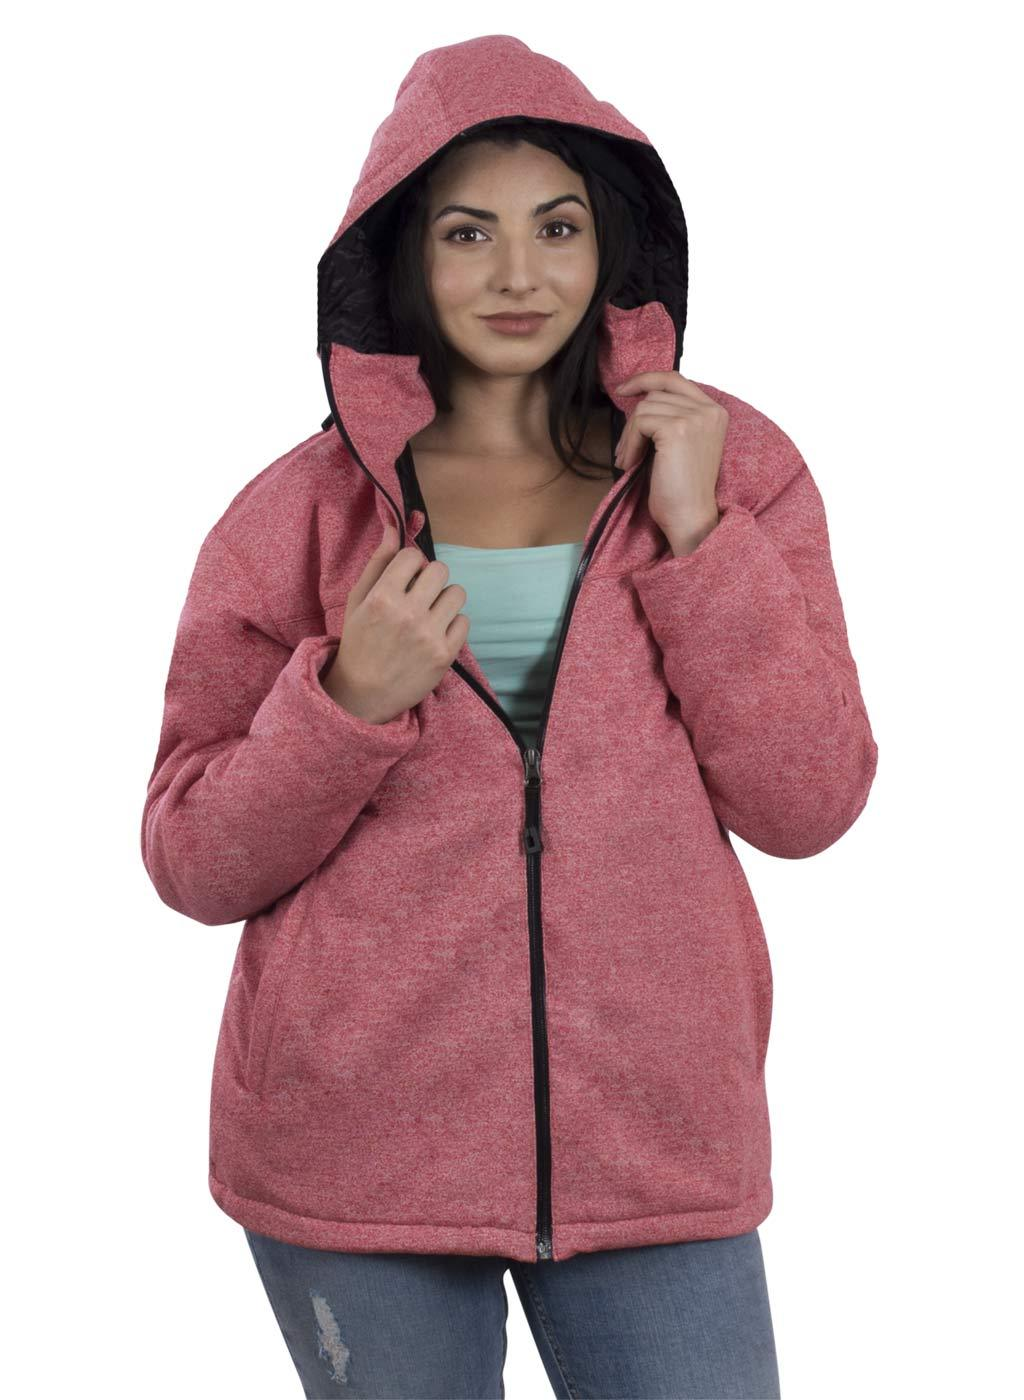 Women's Sweatshirt Joey Travel Jacket